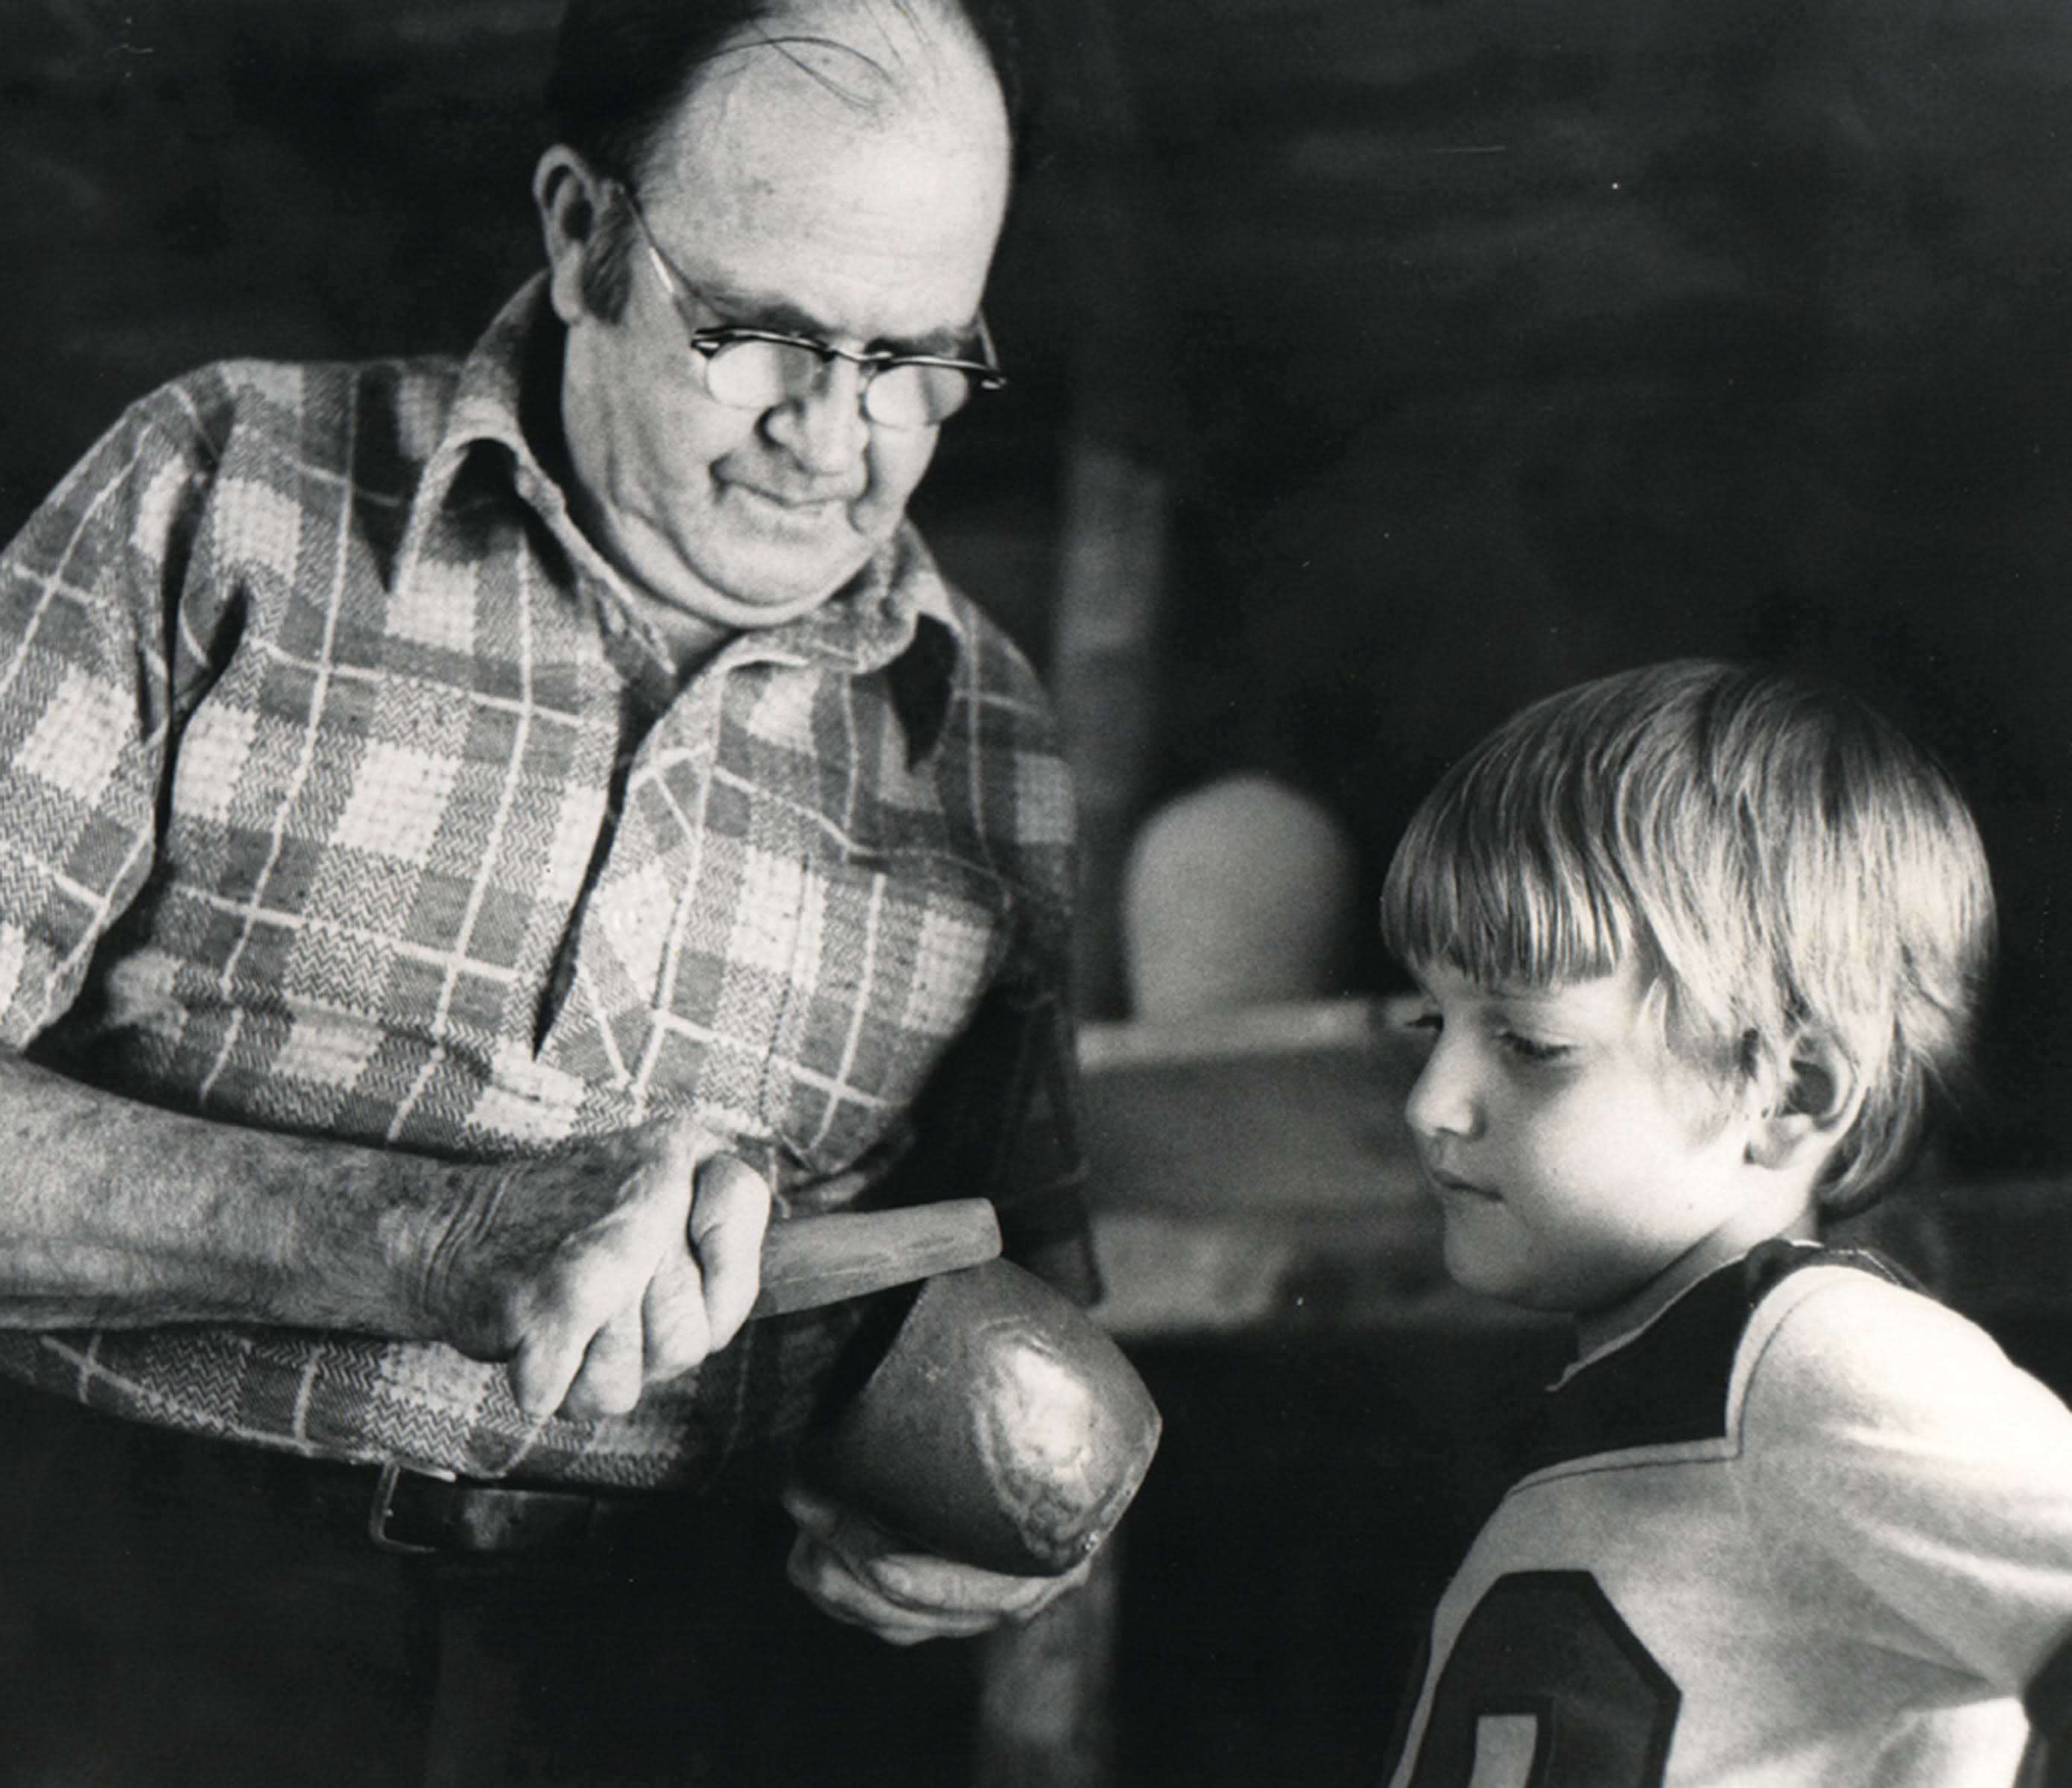 Ben Owen, Sr. and his grandson apprentice Ben Owen III in 1977. Owen Family Archives